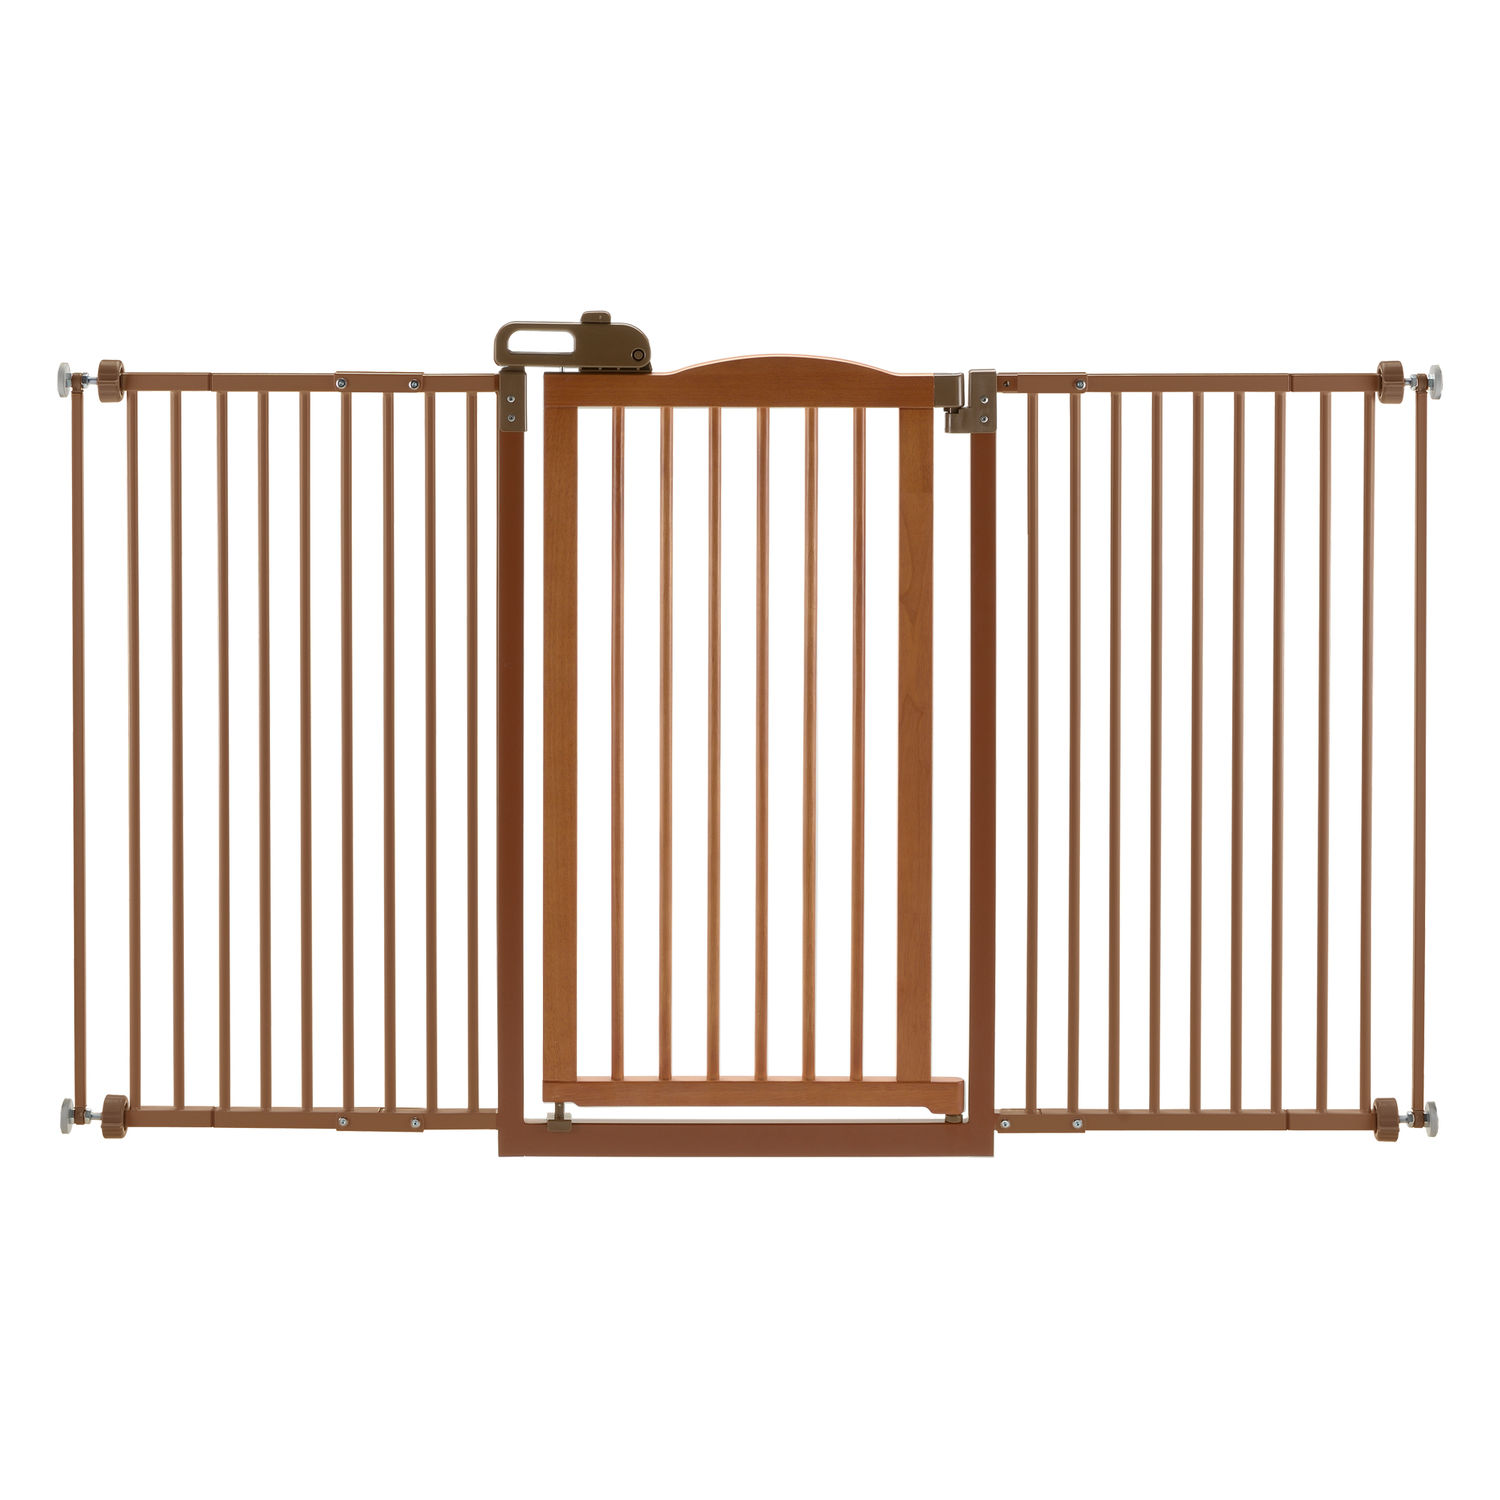 Richell One-Touch Tall and Wide Pressure Mounted Pet Dog Gate II Brown